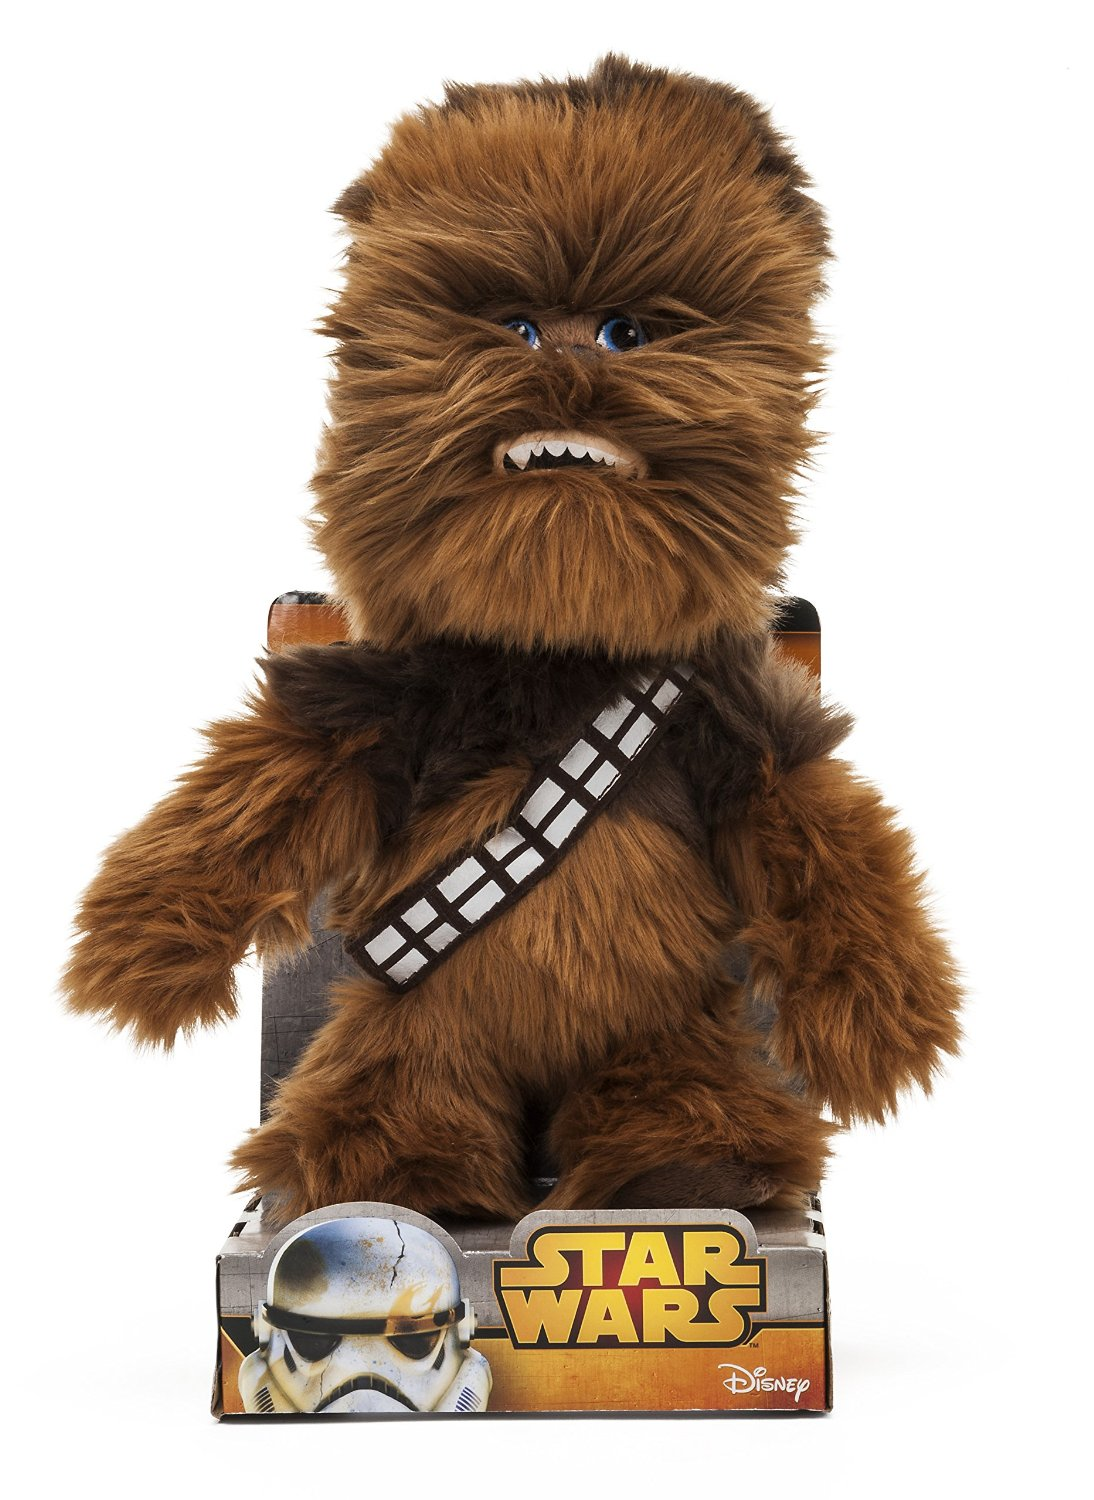 Star Wars - Peluche - Chewbacca - 25 cm